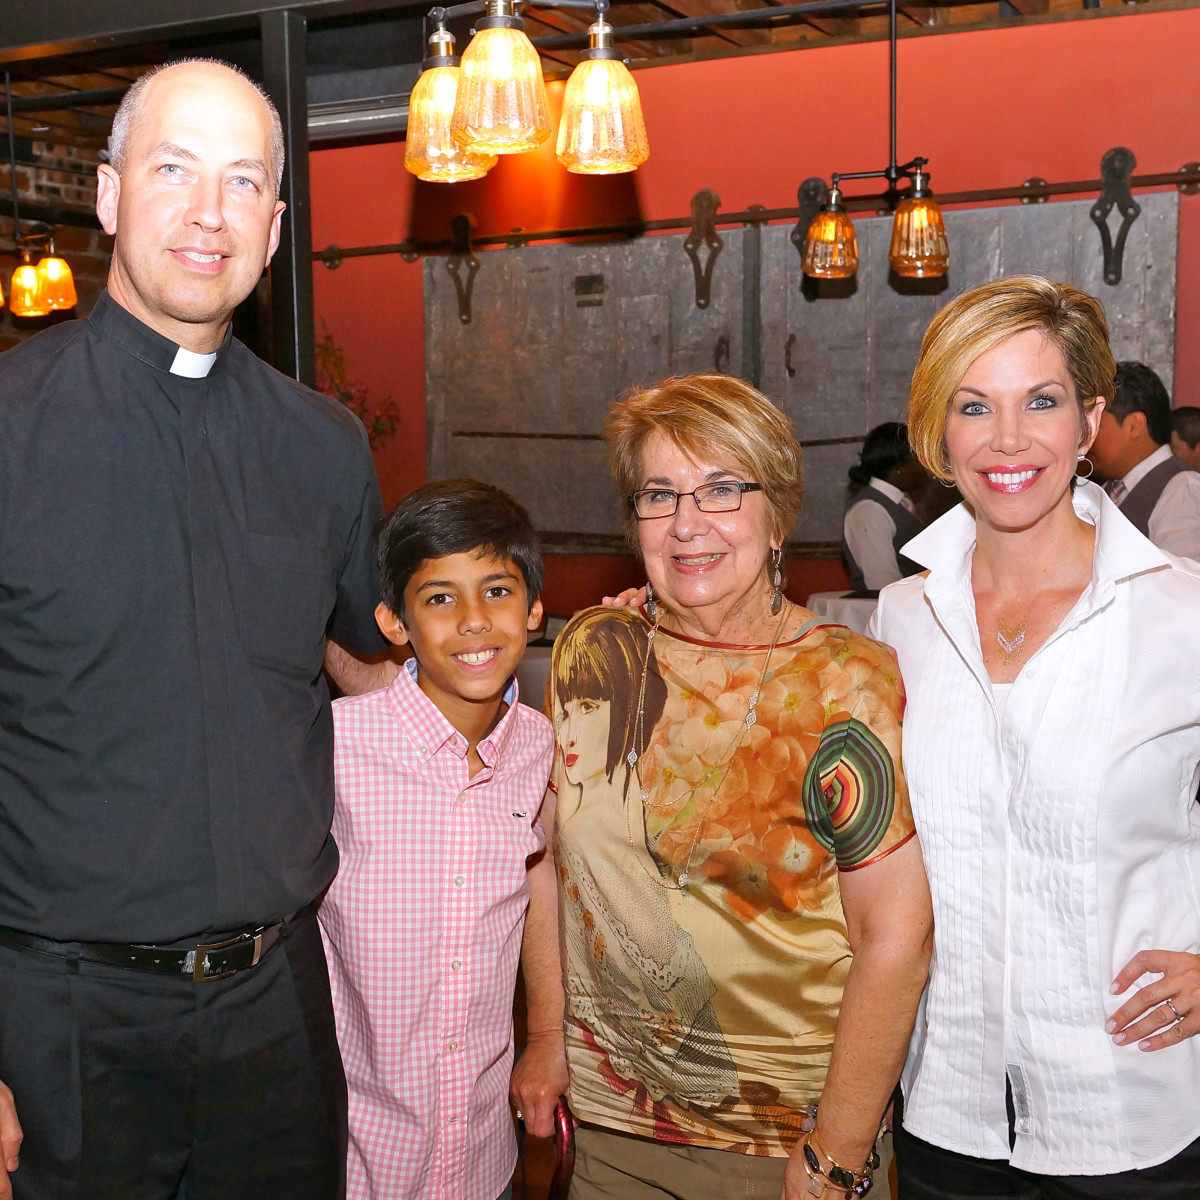 Houston, Roseann Rogers and Lara Bell birthday party, August 2015, Father Joe Rogers, Nikhil Shah, Judy Rogers, Roseann Rogers